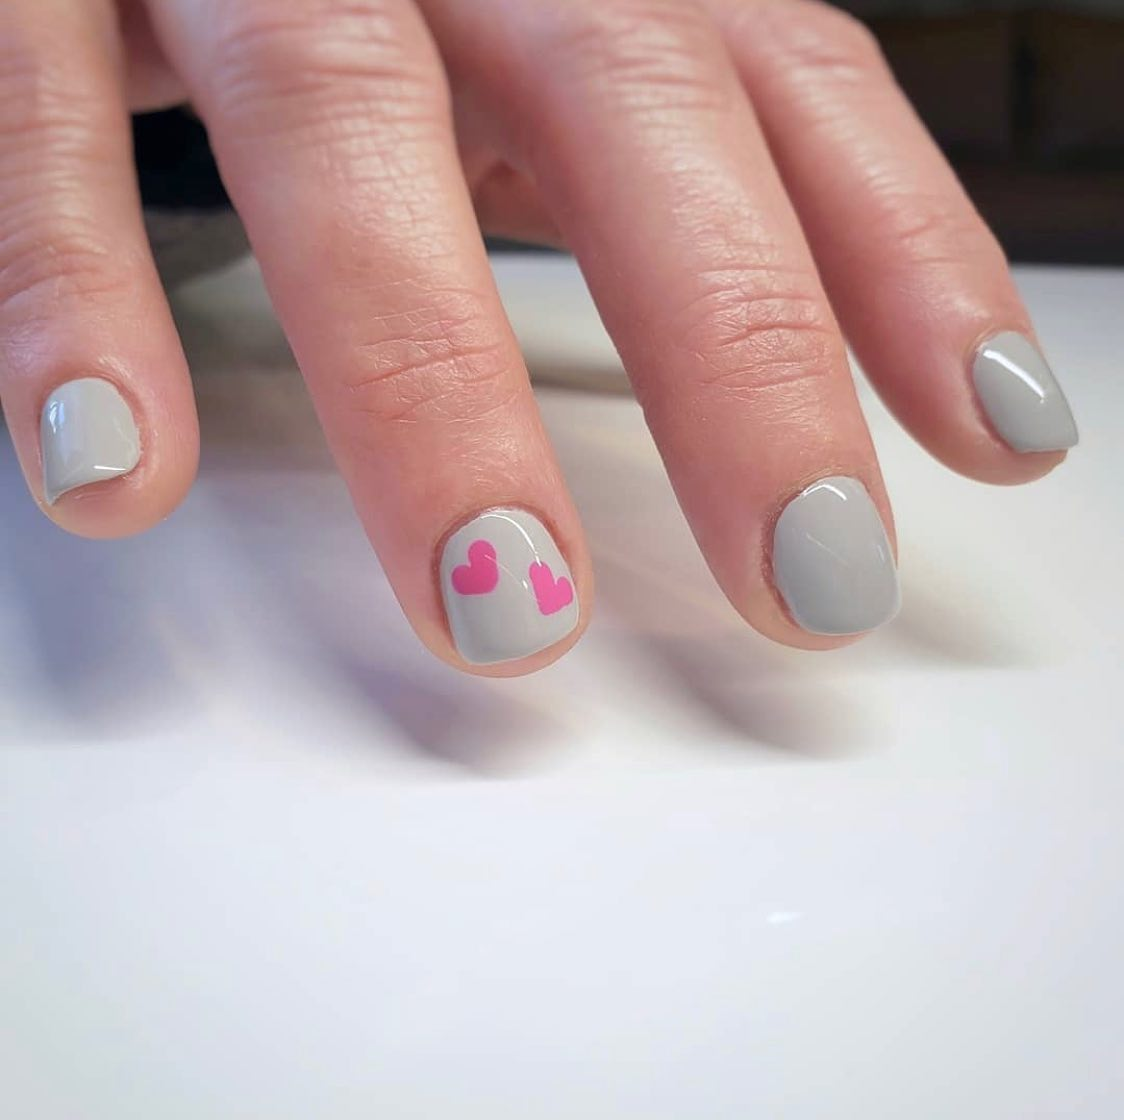 Dazzle Dry Manicure with Nail Art